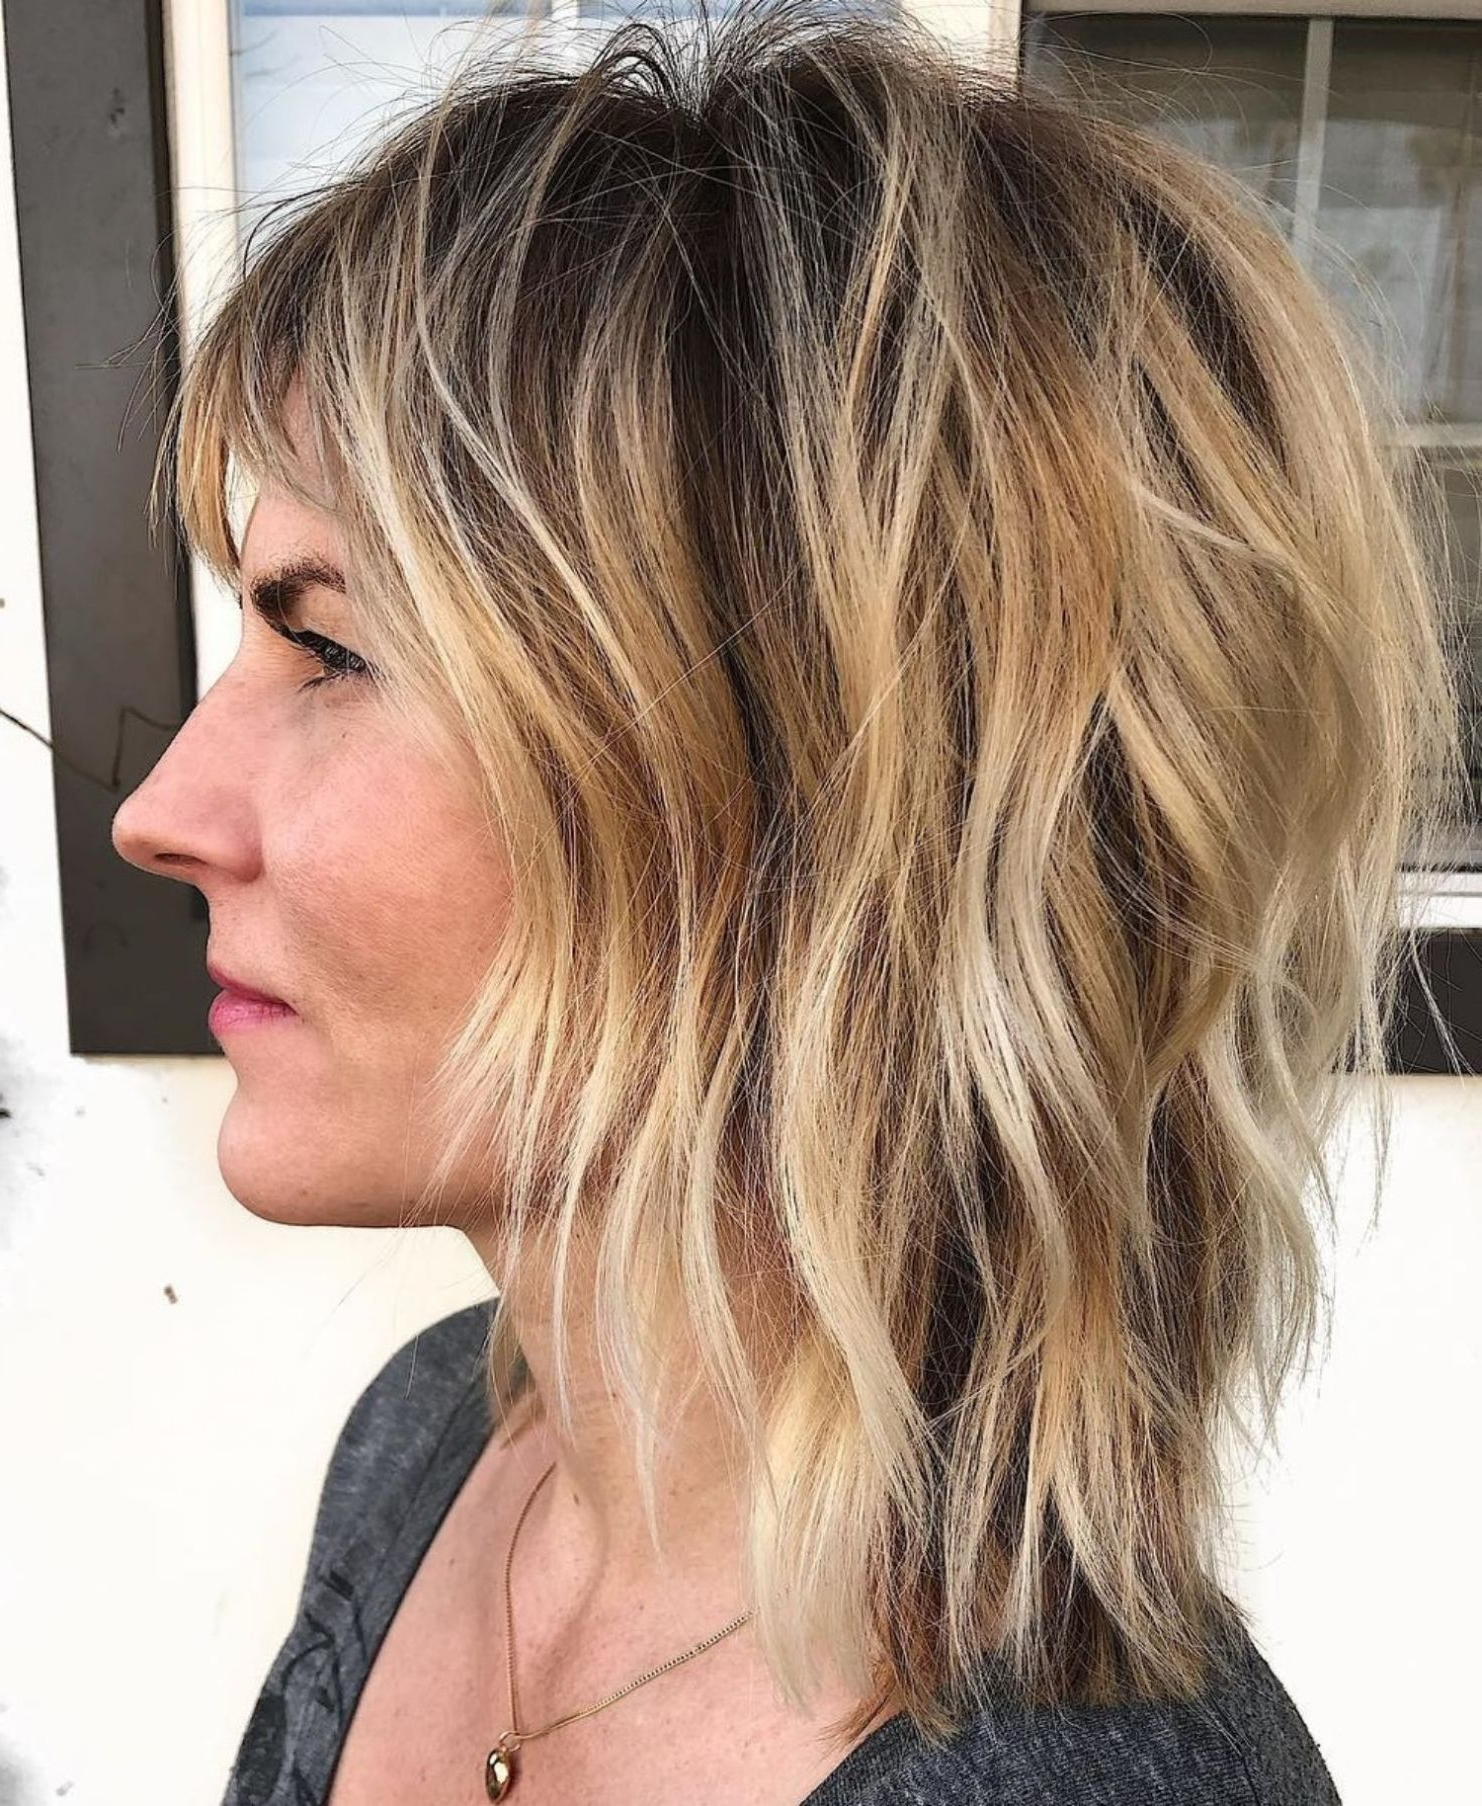 Pin On Hair Regarding 2018 Shoulder Length Shag Haircuts With Babylights (View 16 of 20)